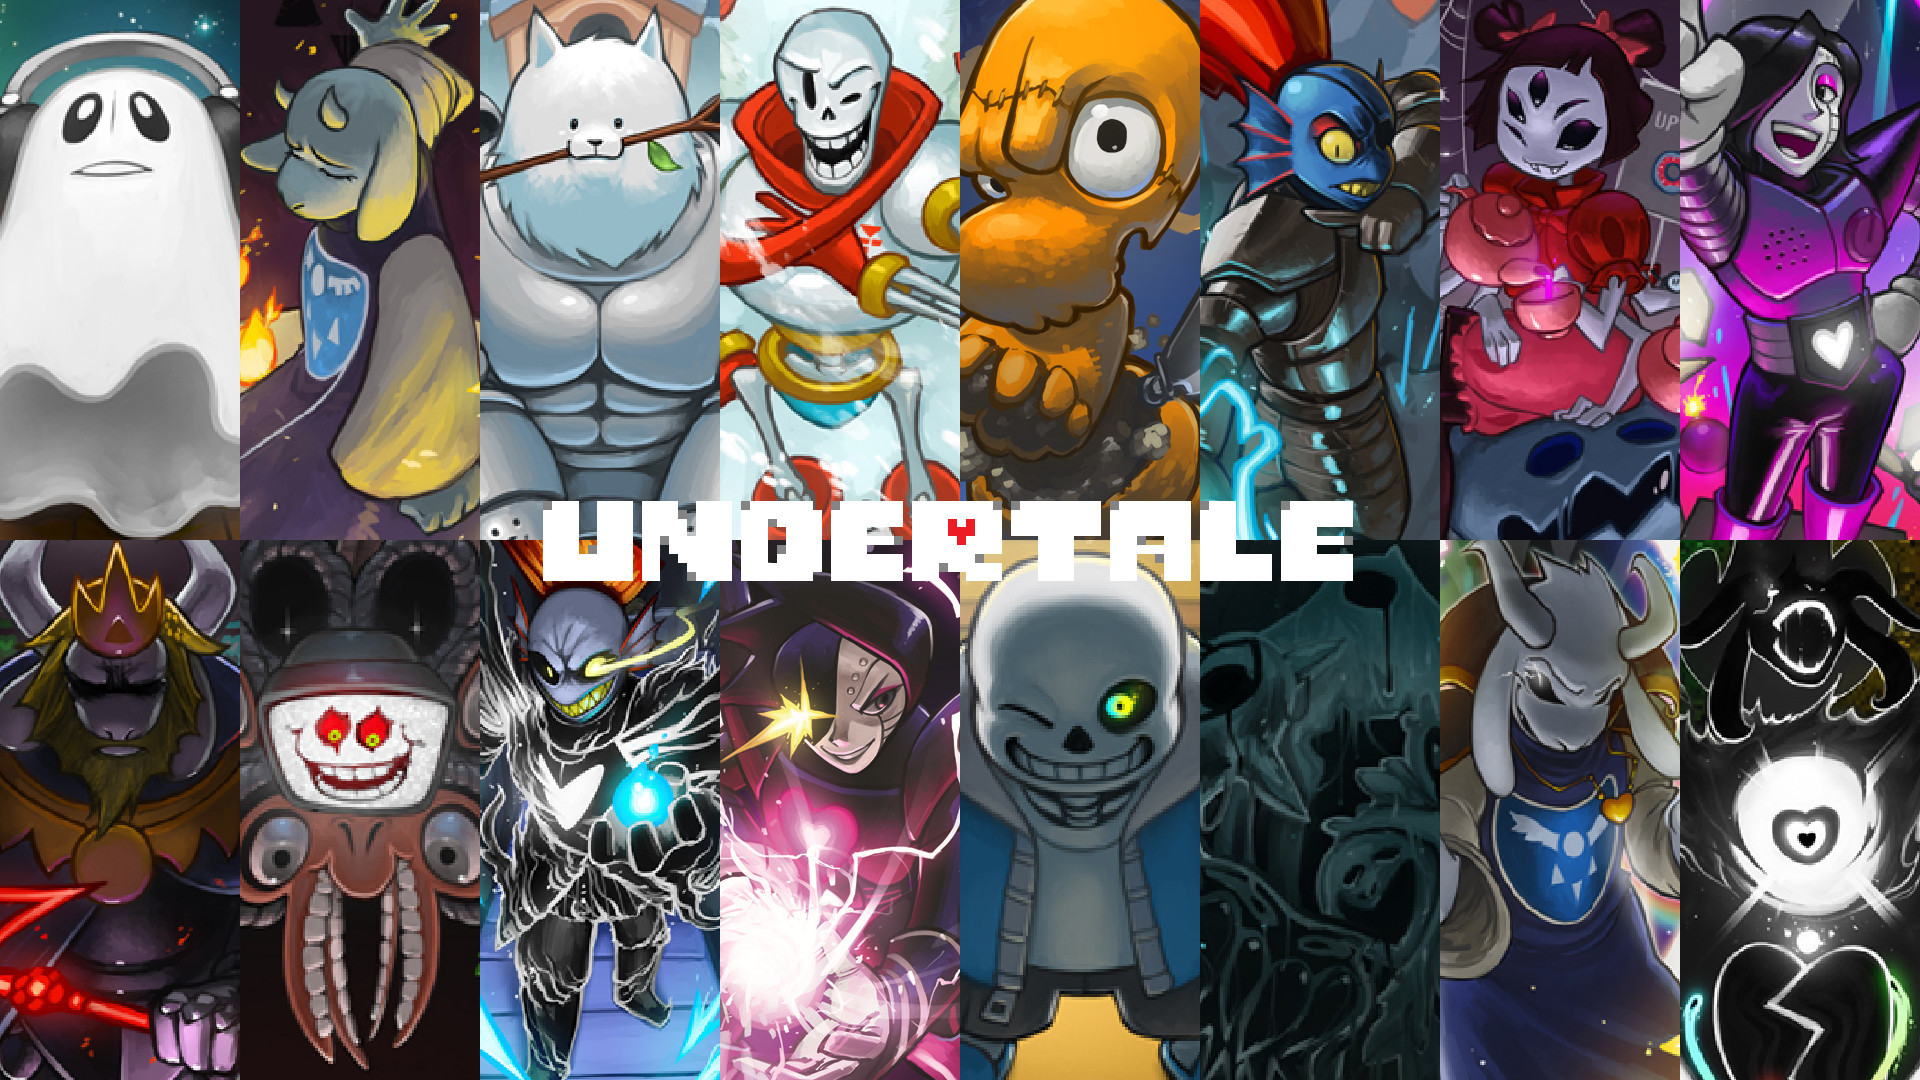 Chara Undertale Wallpapers 66 Pictures